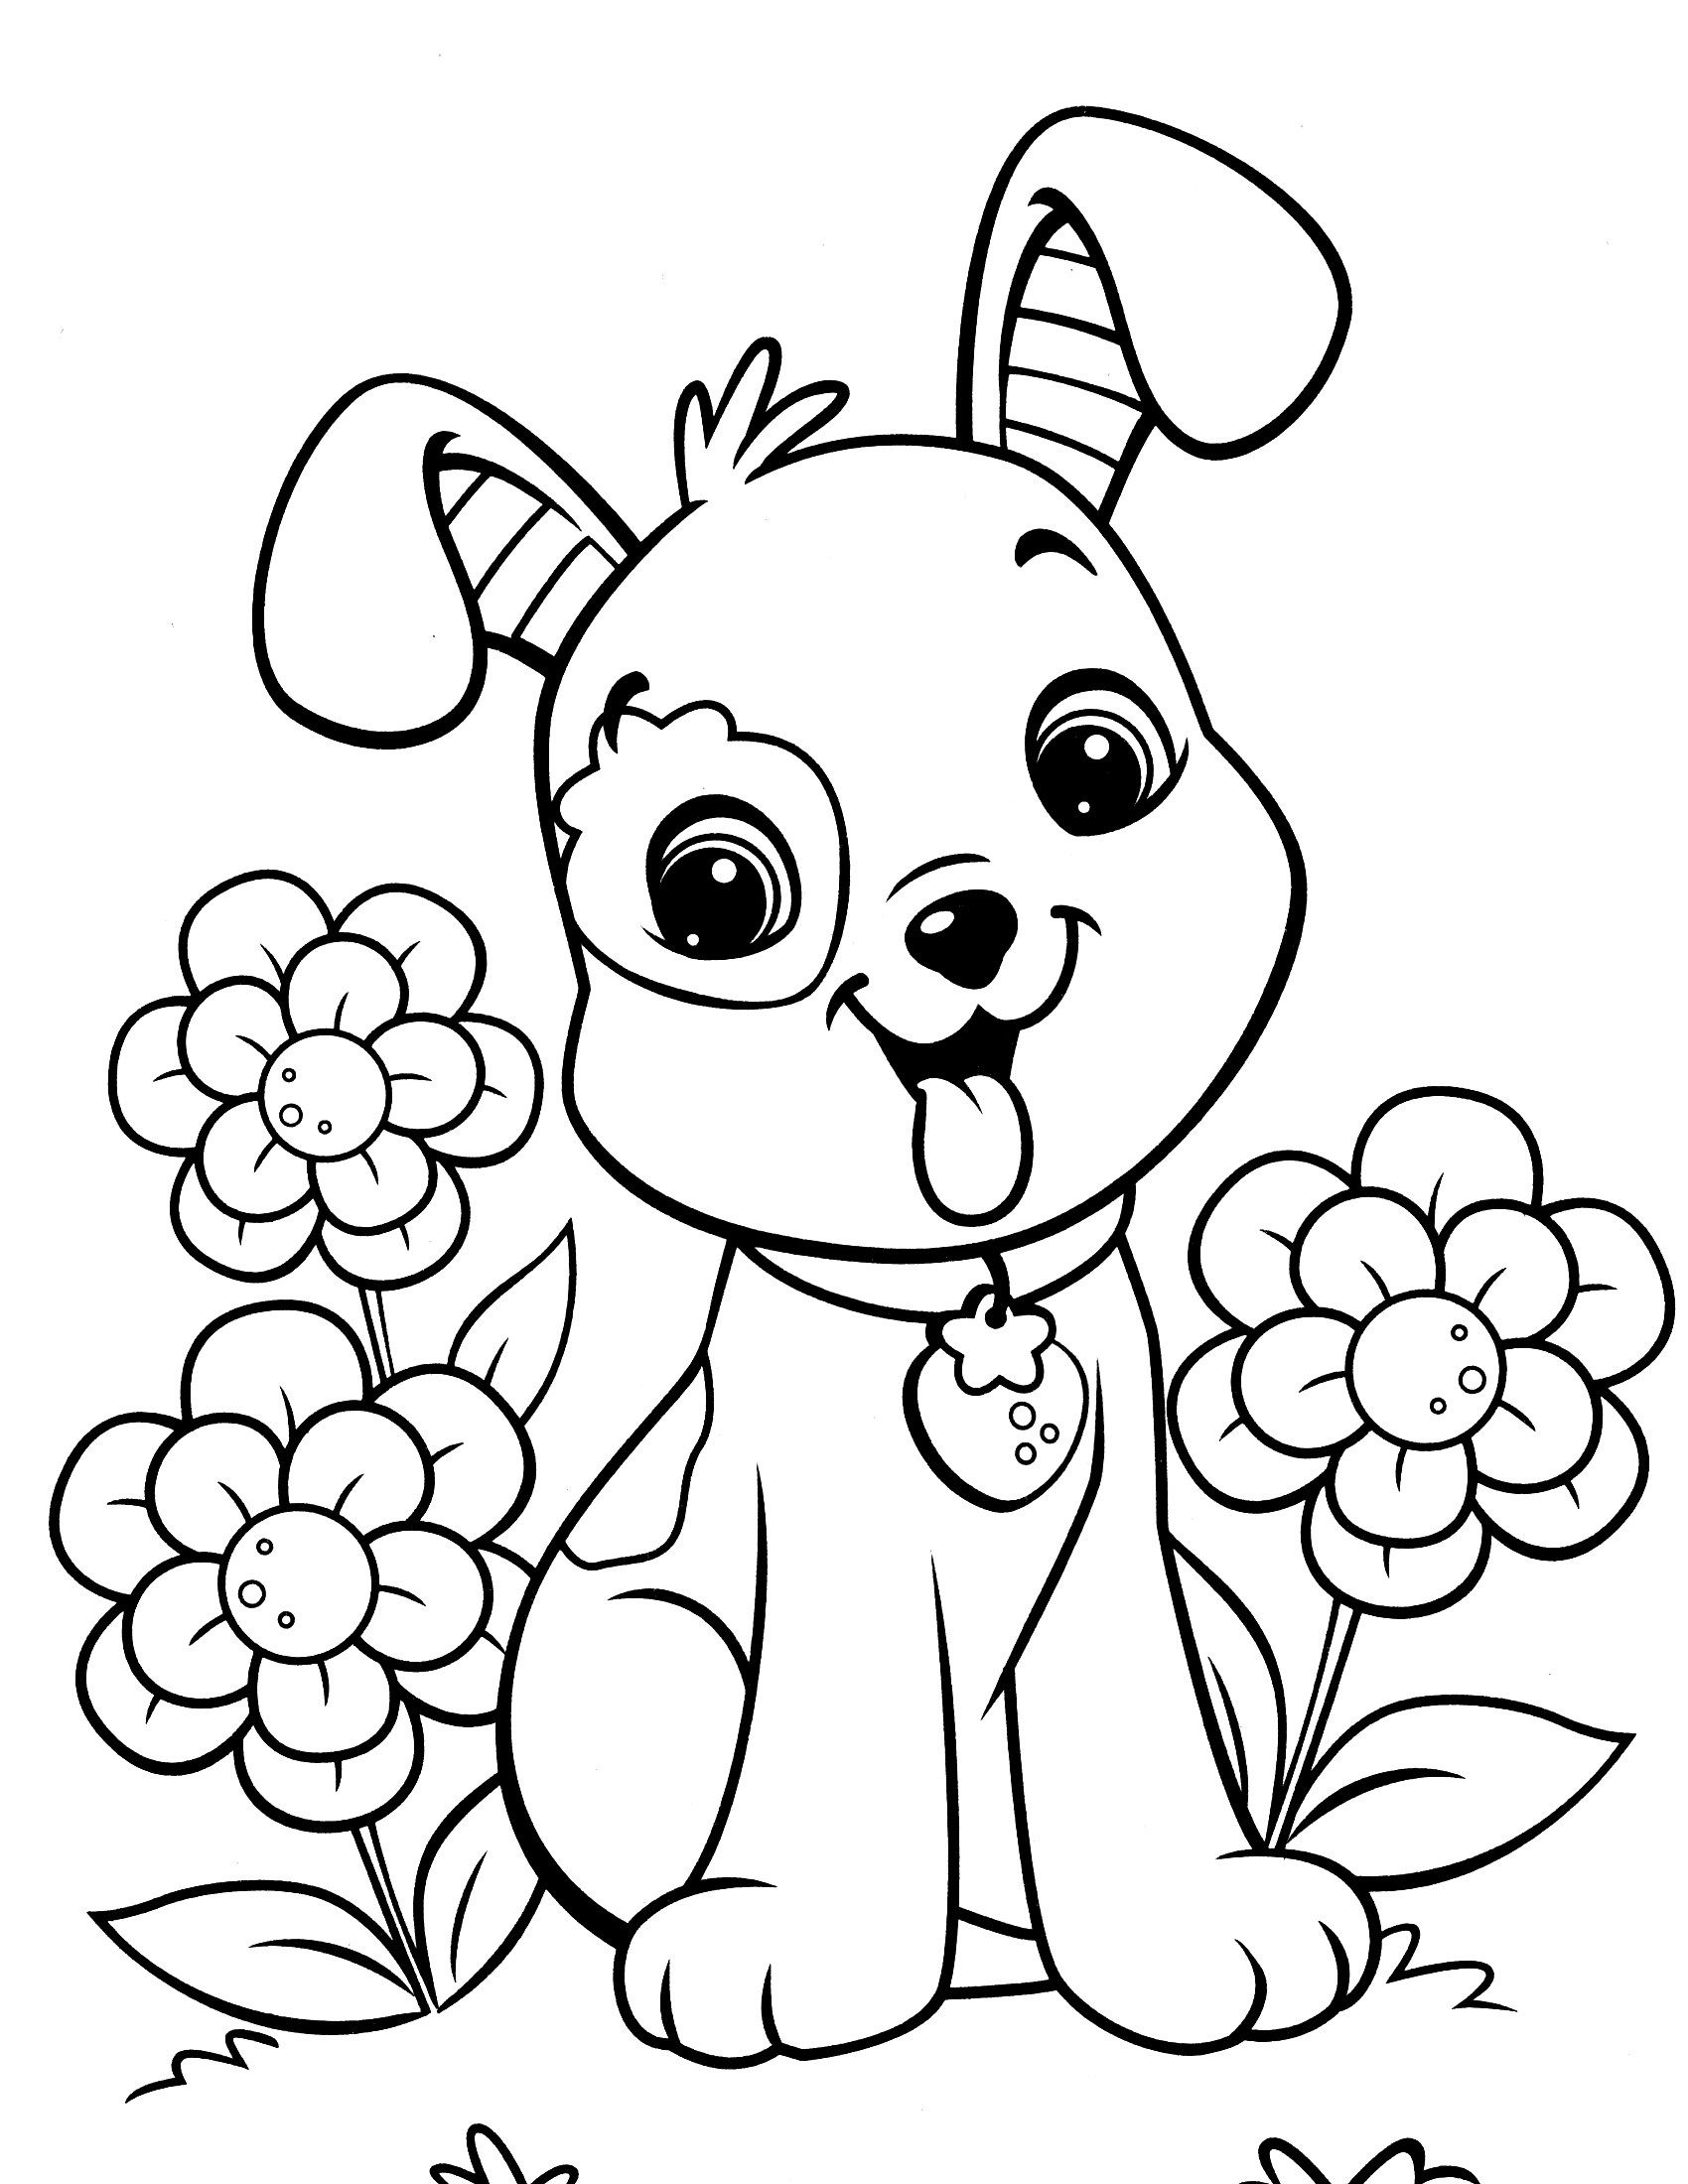 Image Result For Free Dog Coloring Pages Puppy Coloring Pages Dog Coloring Page Cute Coloring Pages